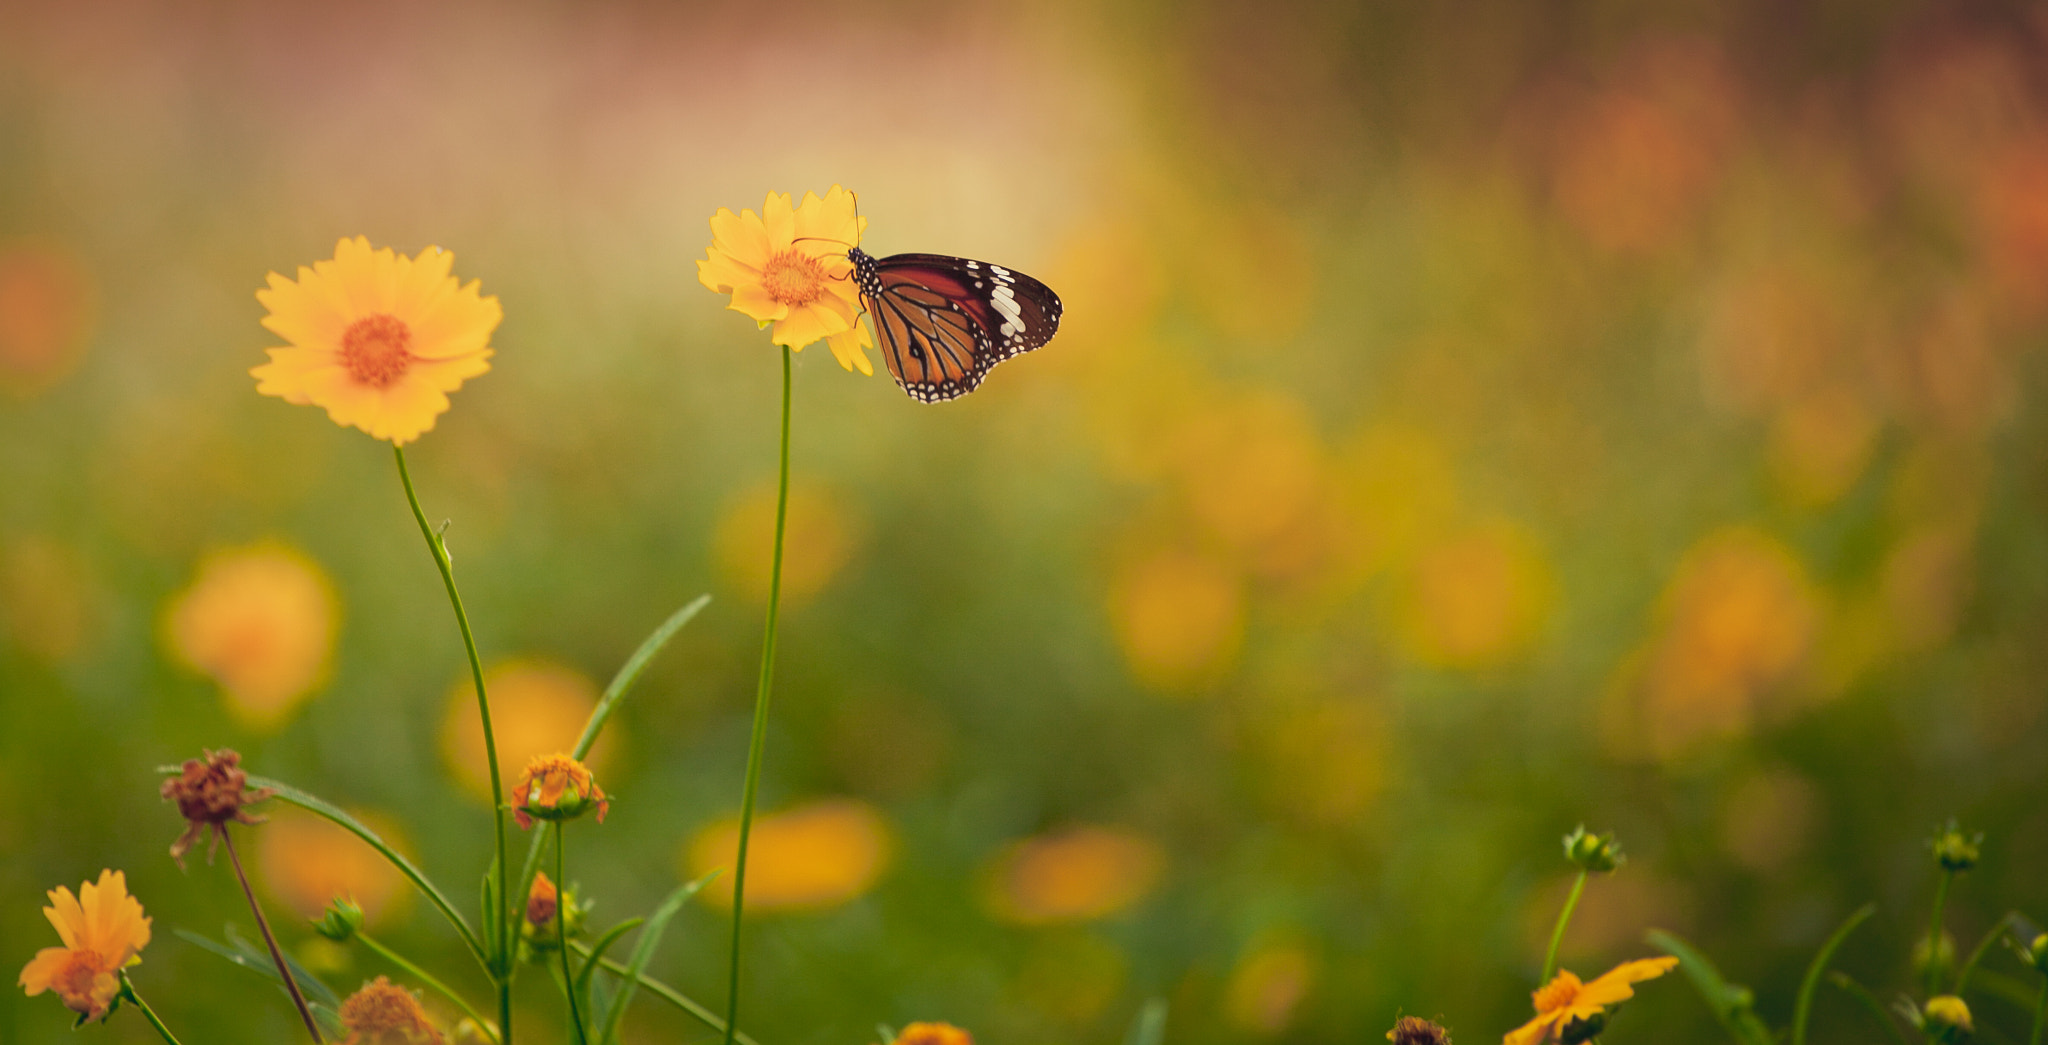 Photograph Tiger Butterfly  by sandeep kumar on 500px